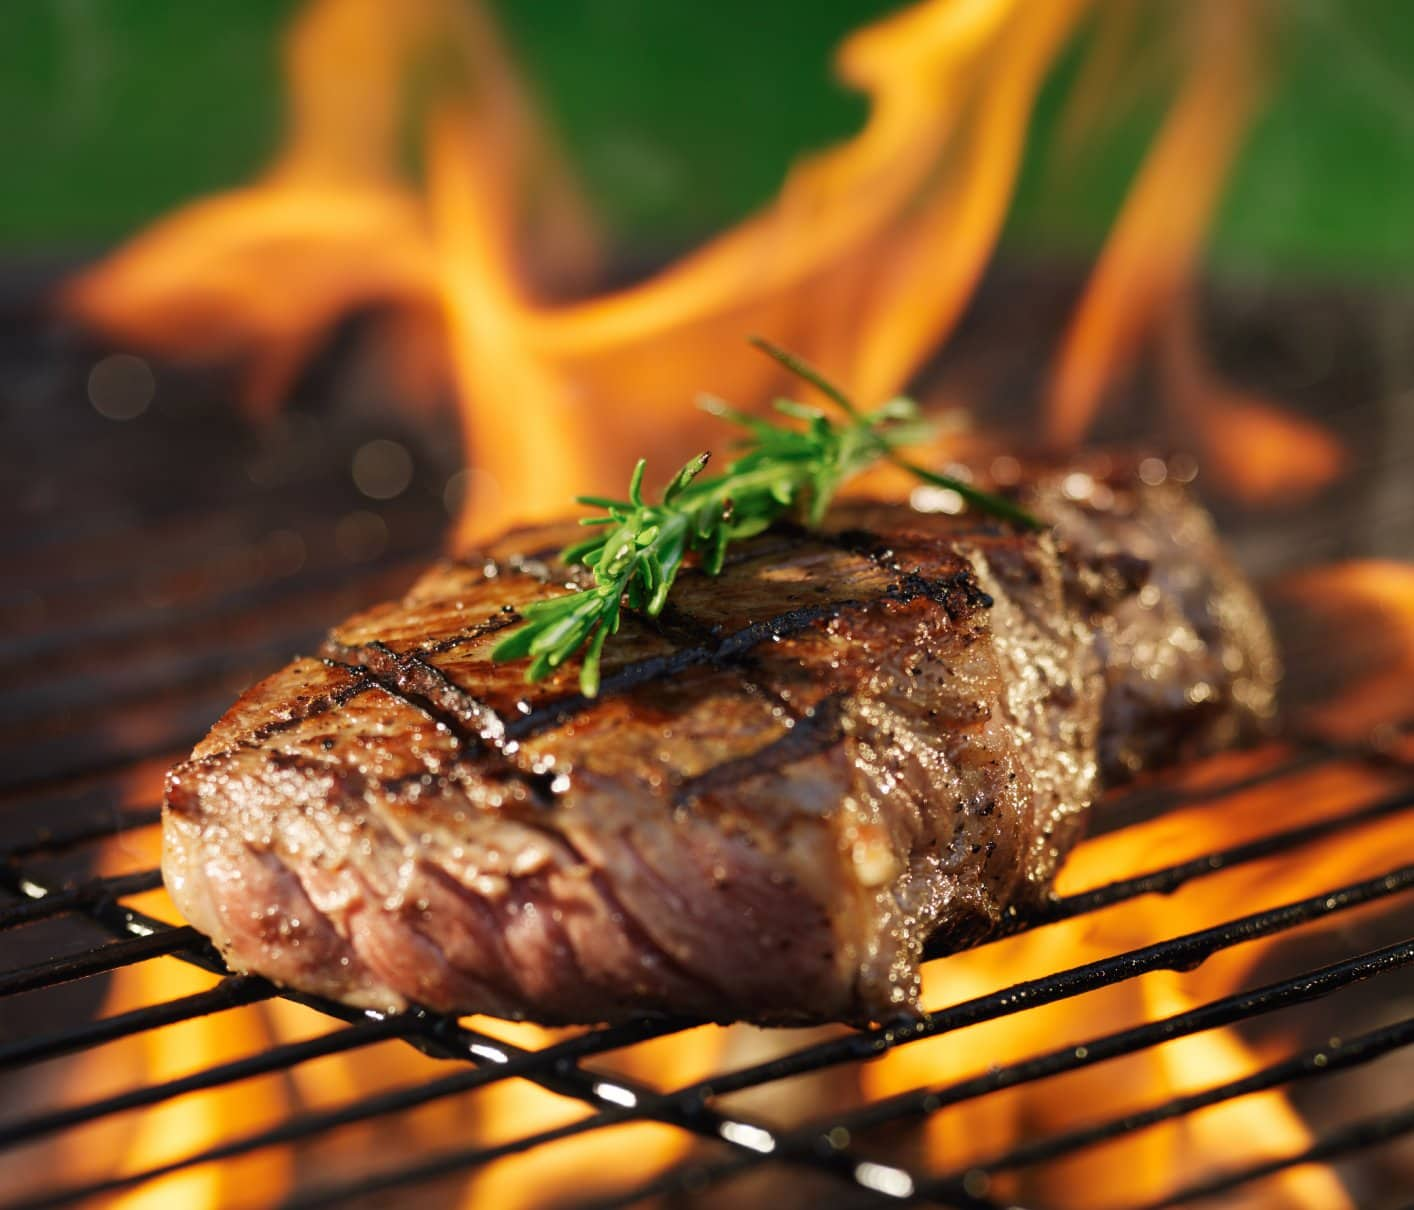 A steak on a grill garnished with Rosemary